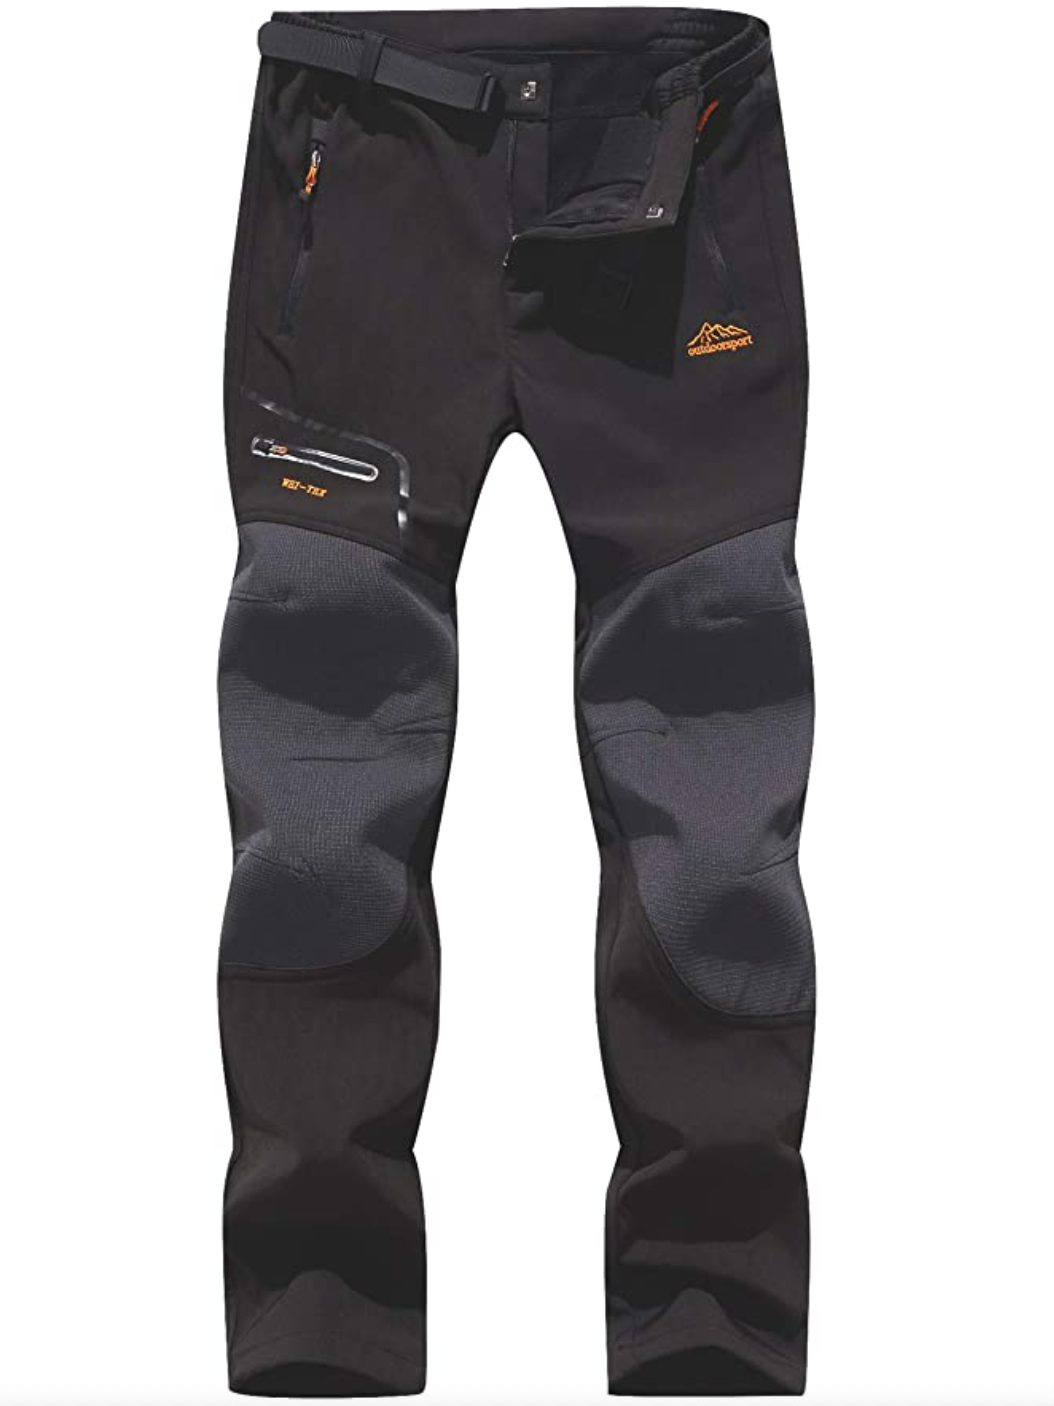 BenBoy Waterproof Cargo Hiking Pants